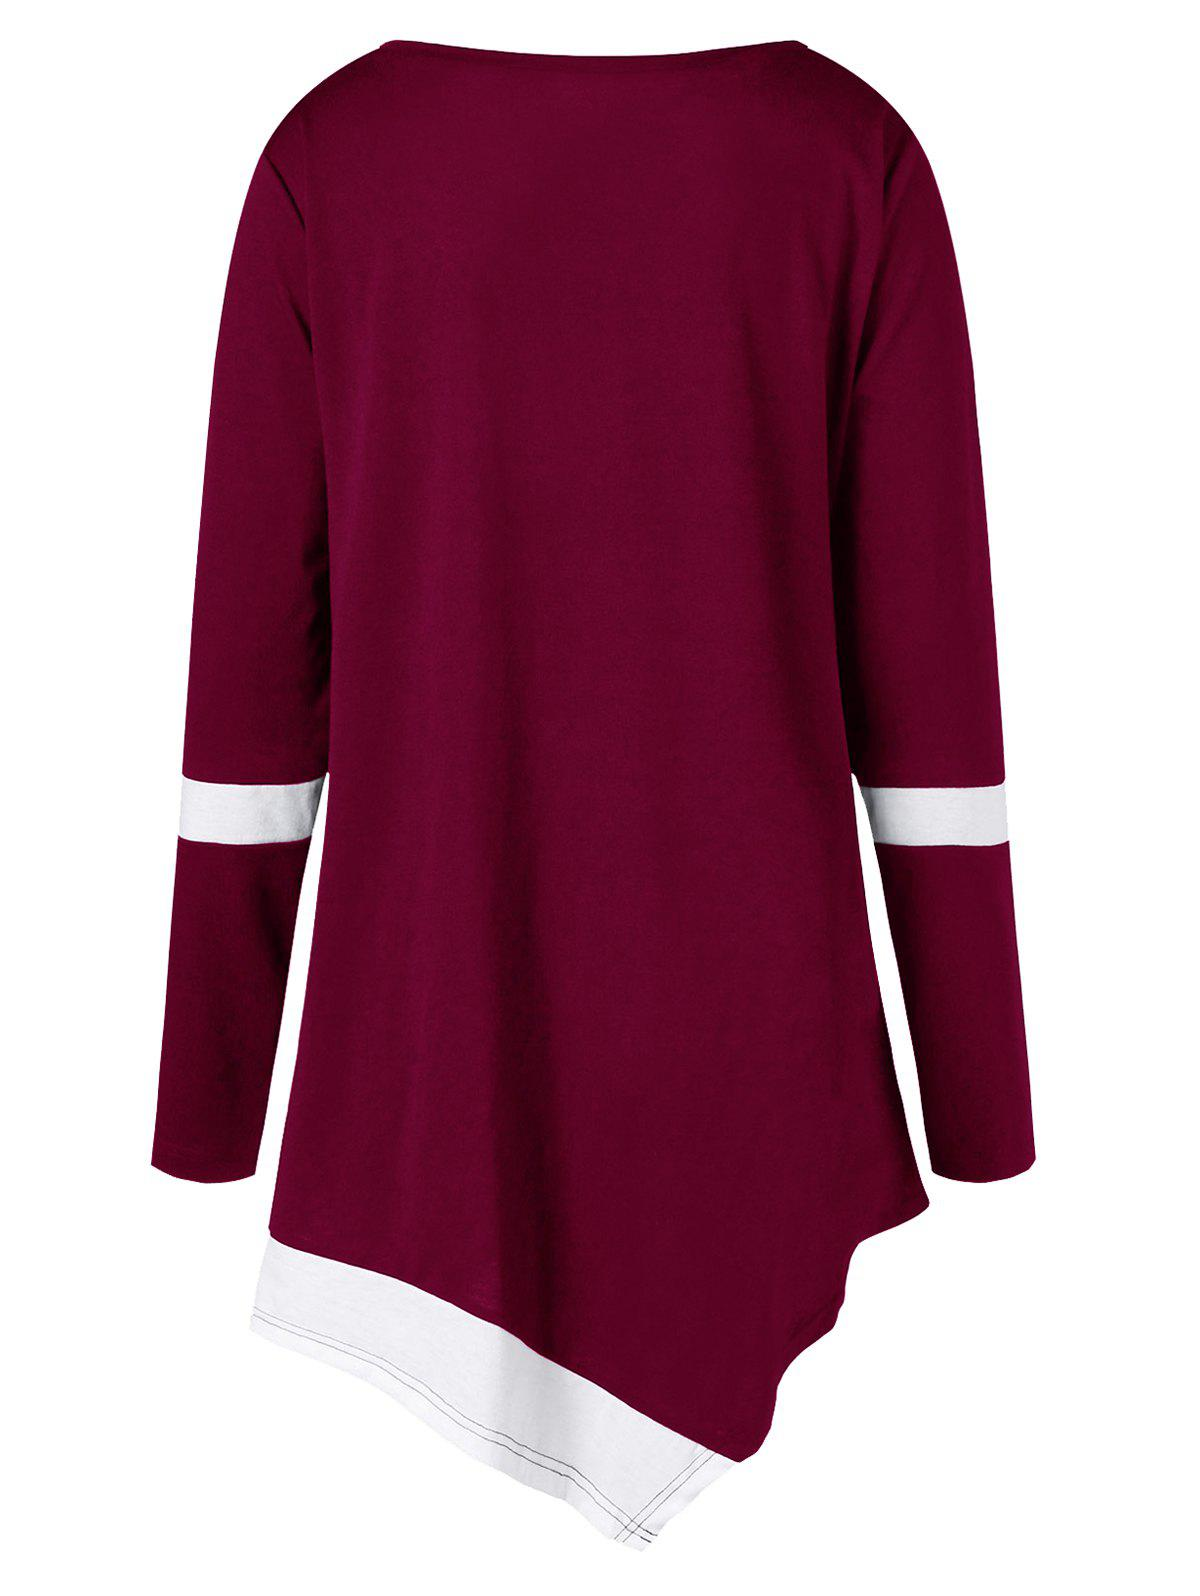 Plus Size Two Tone Color Asymmetric Top - WINE RED 5XL